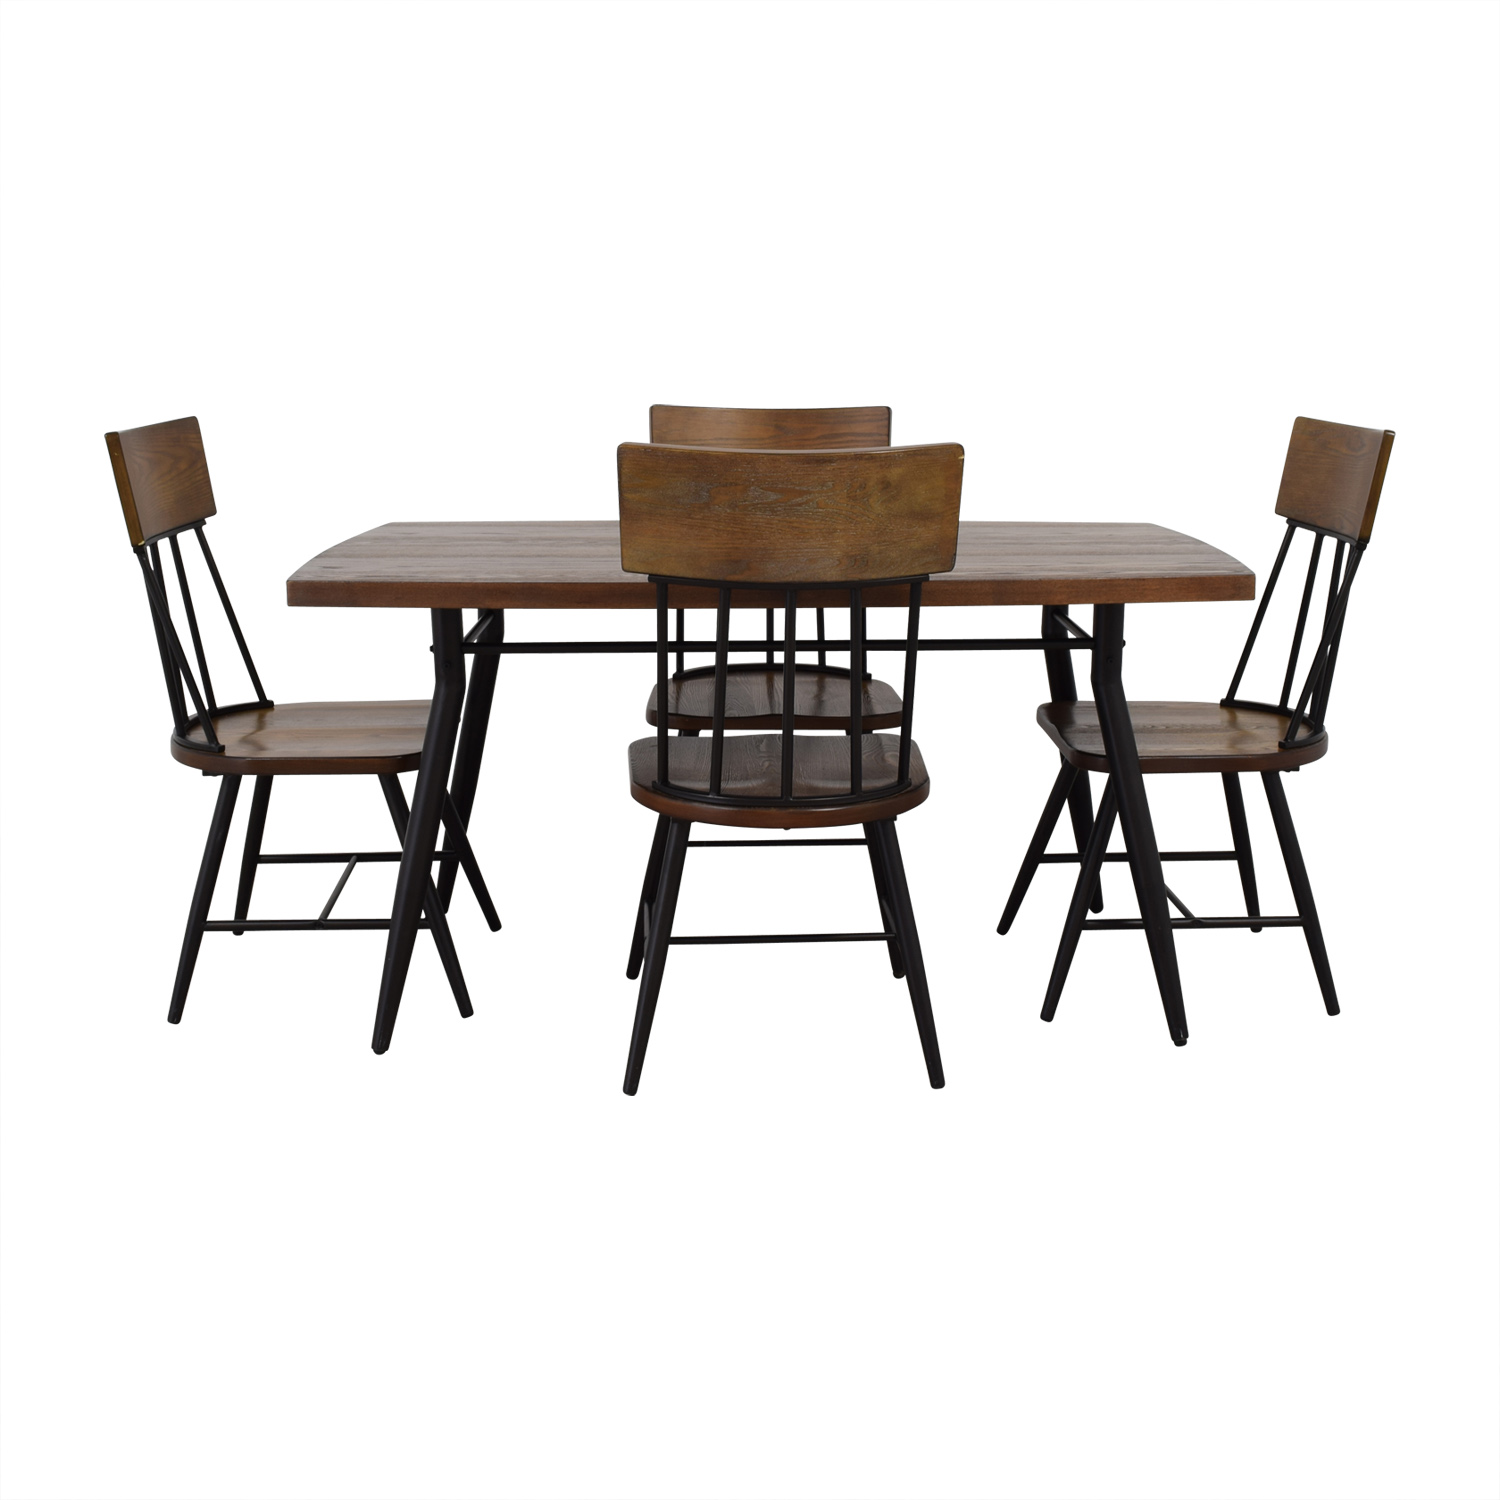 Ashley Furniture Ashley Furniture Wood Dining Room Table and Chair Set